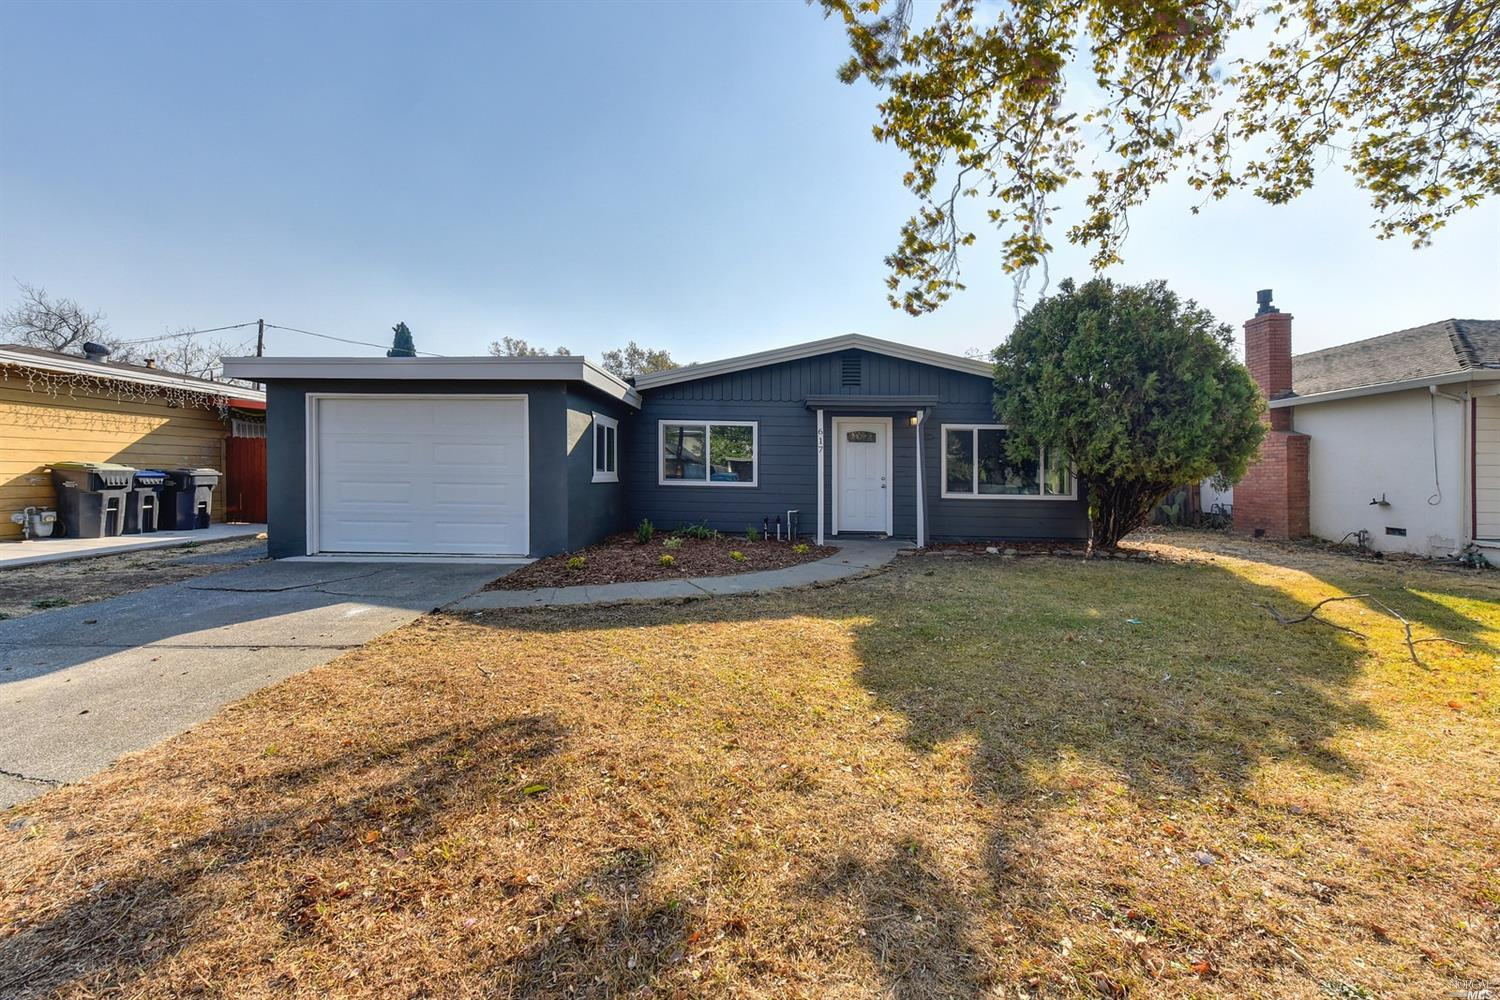 617 Oregon St  | Sold 2/22/19 at $326,000